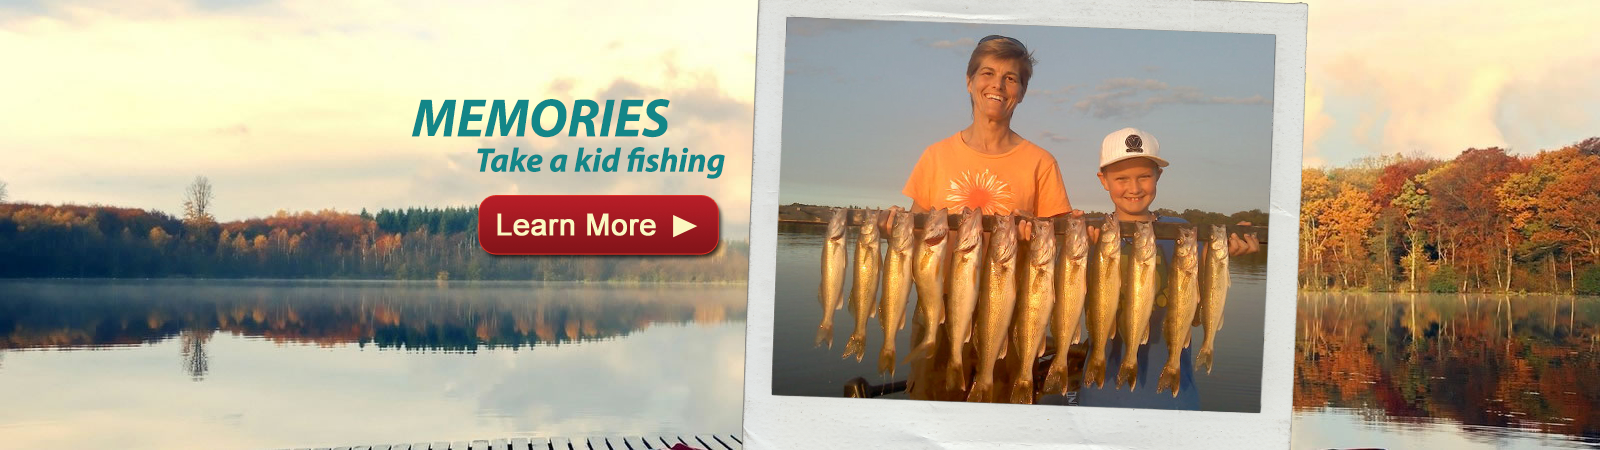 Take a kid fishing in Minnesota with Captain Josh and Minnesota Guide Service